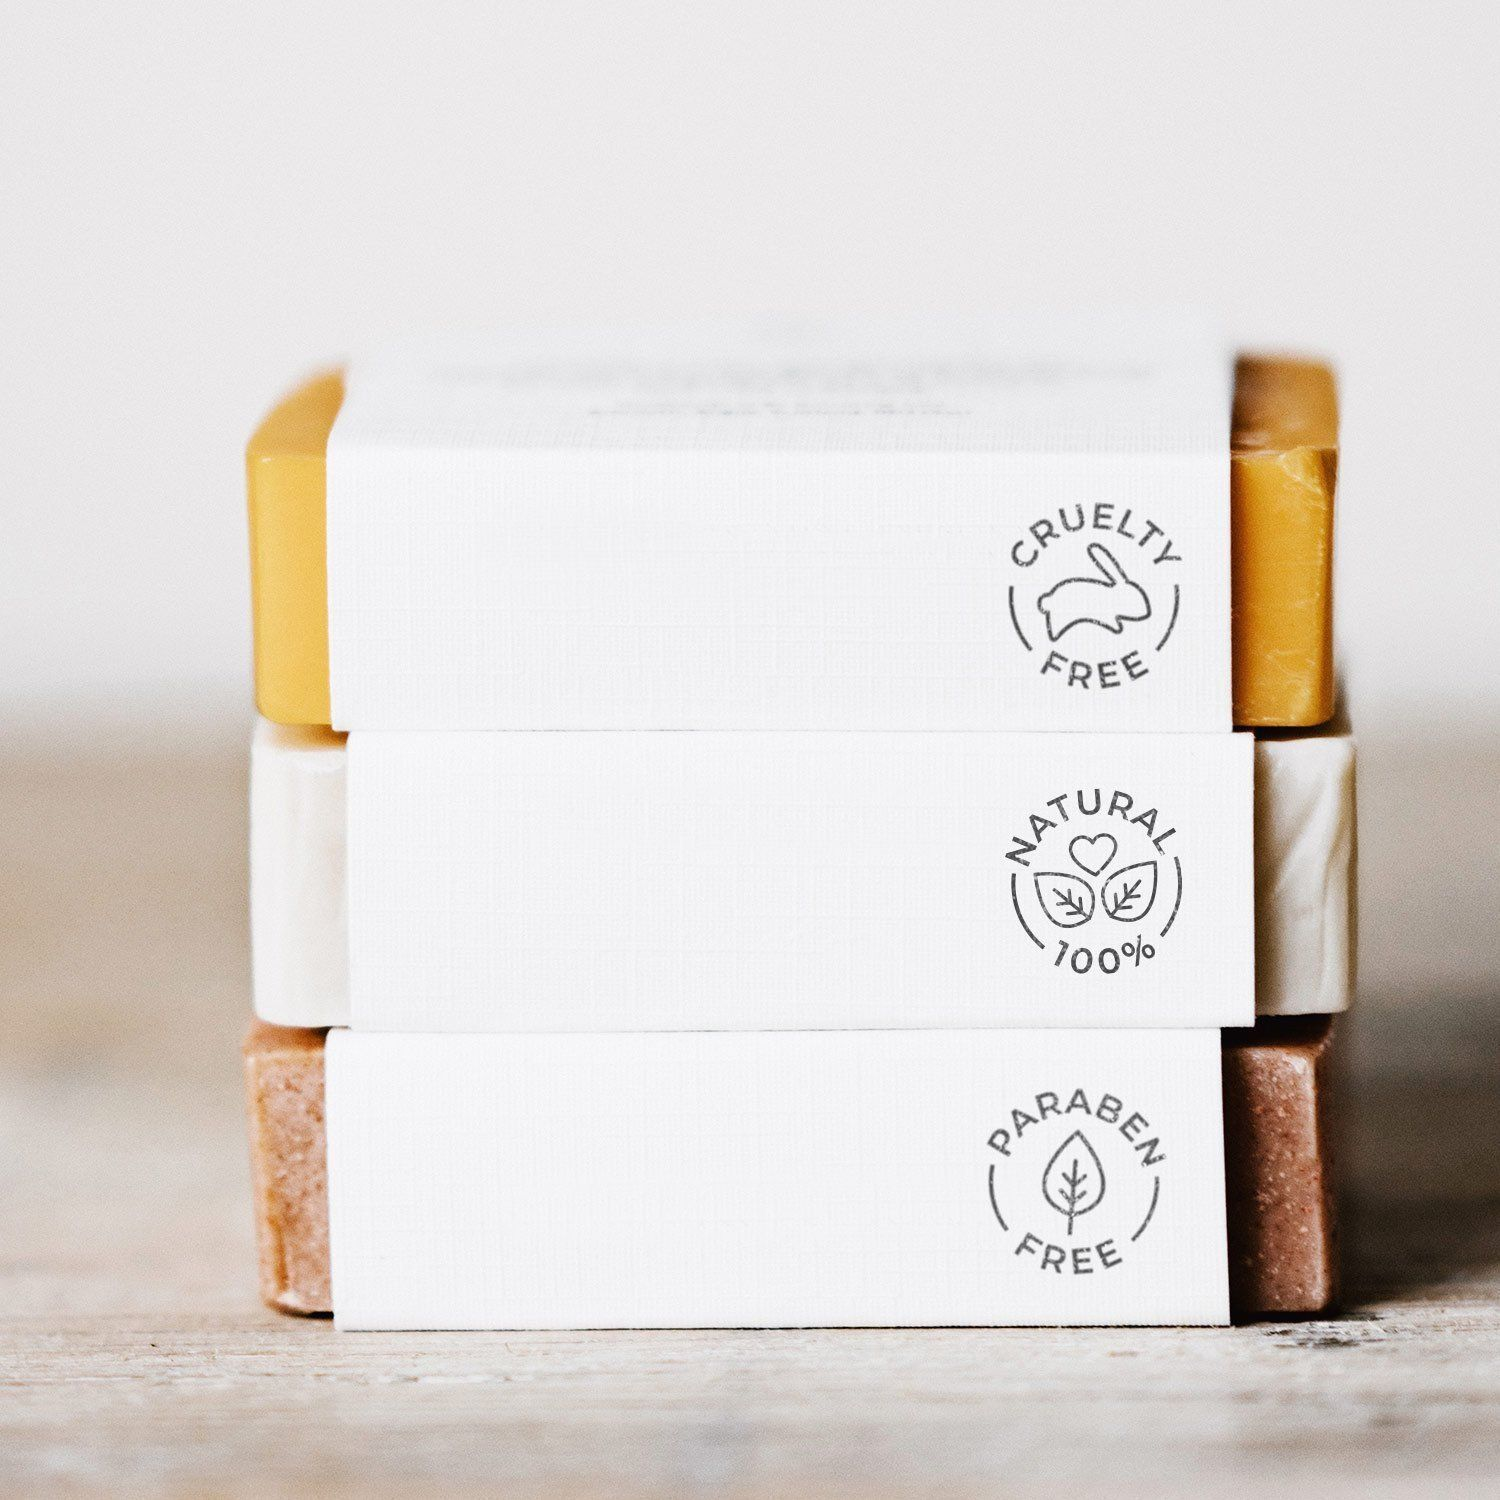 Natural beauty icon stamps, natural cosmetic icon stamp for organic brand packages, cruelty free stamp, organic beauty packaging icon stamp